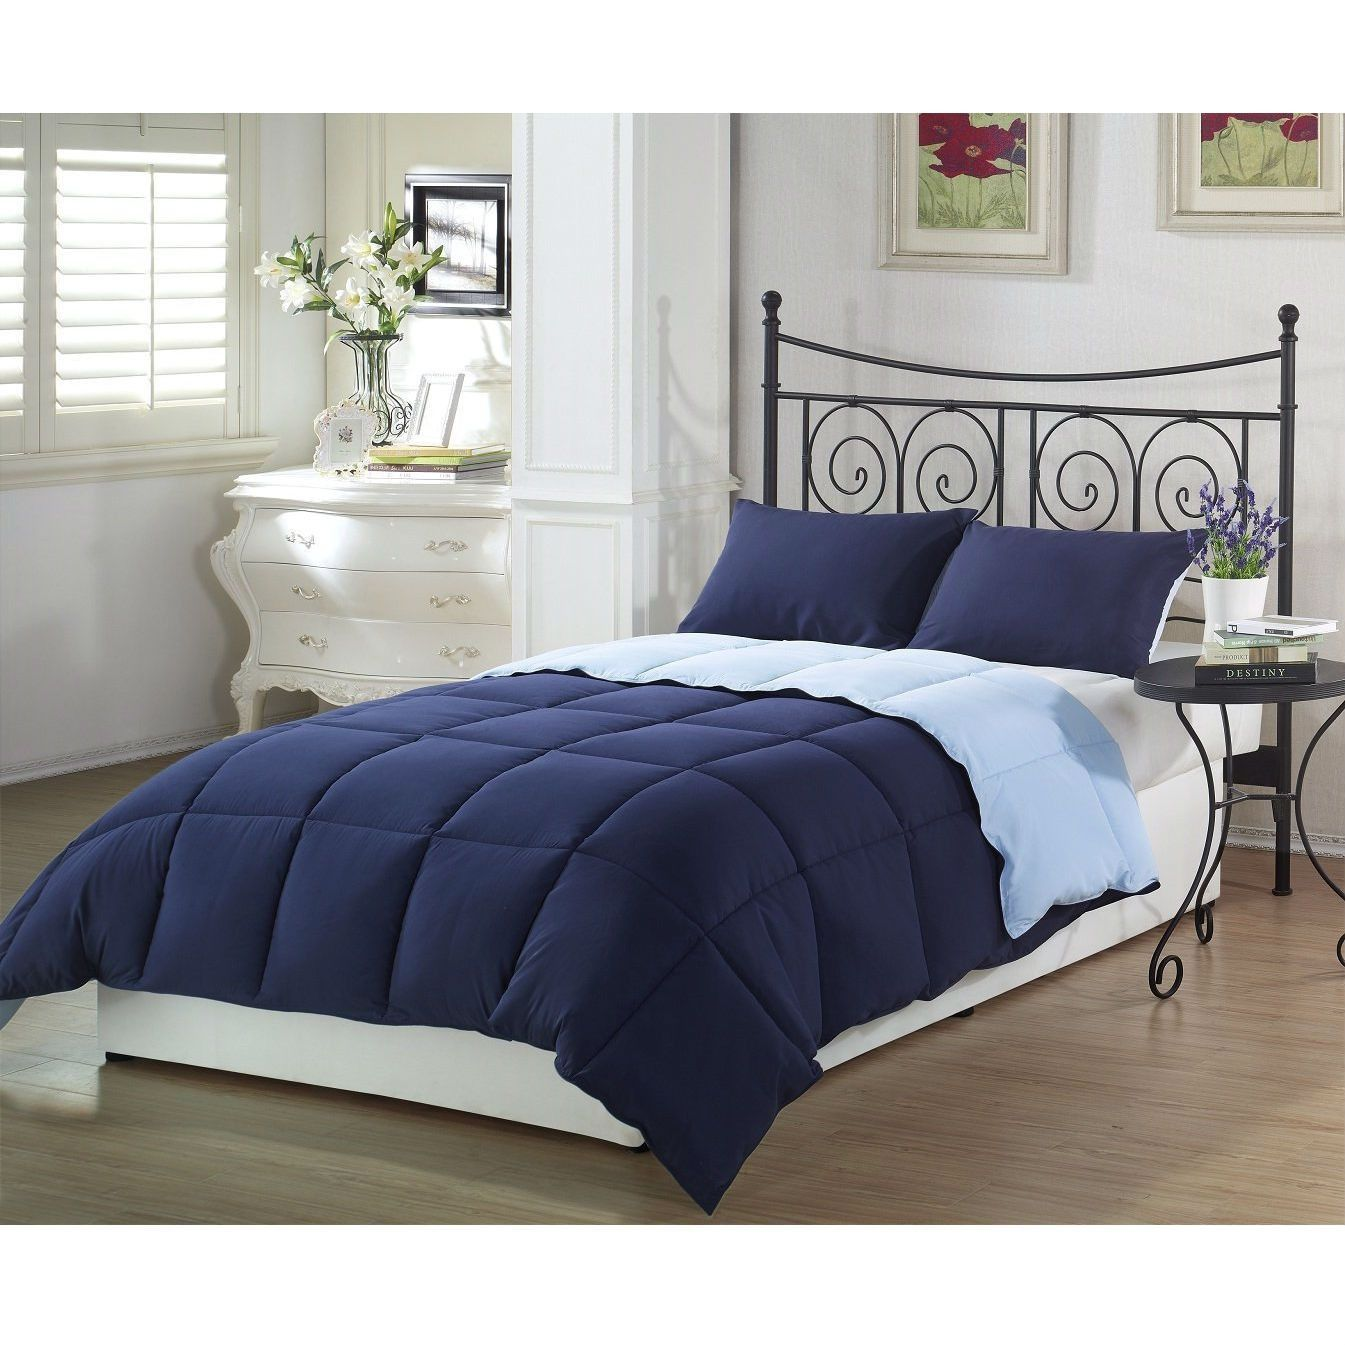 ideas best sky king navy set interior sets target with blue comforter design on incredible solid comforters linen bed size